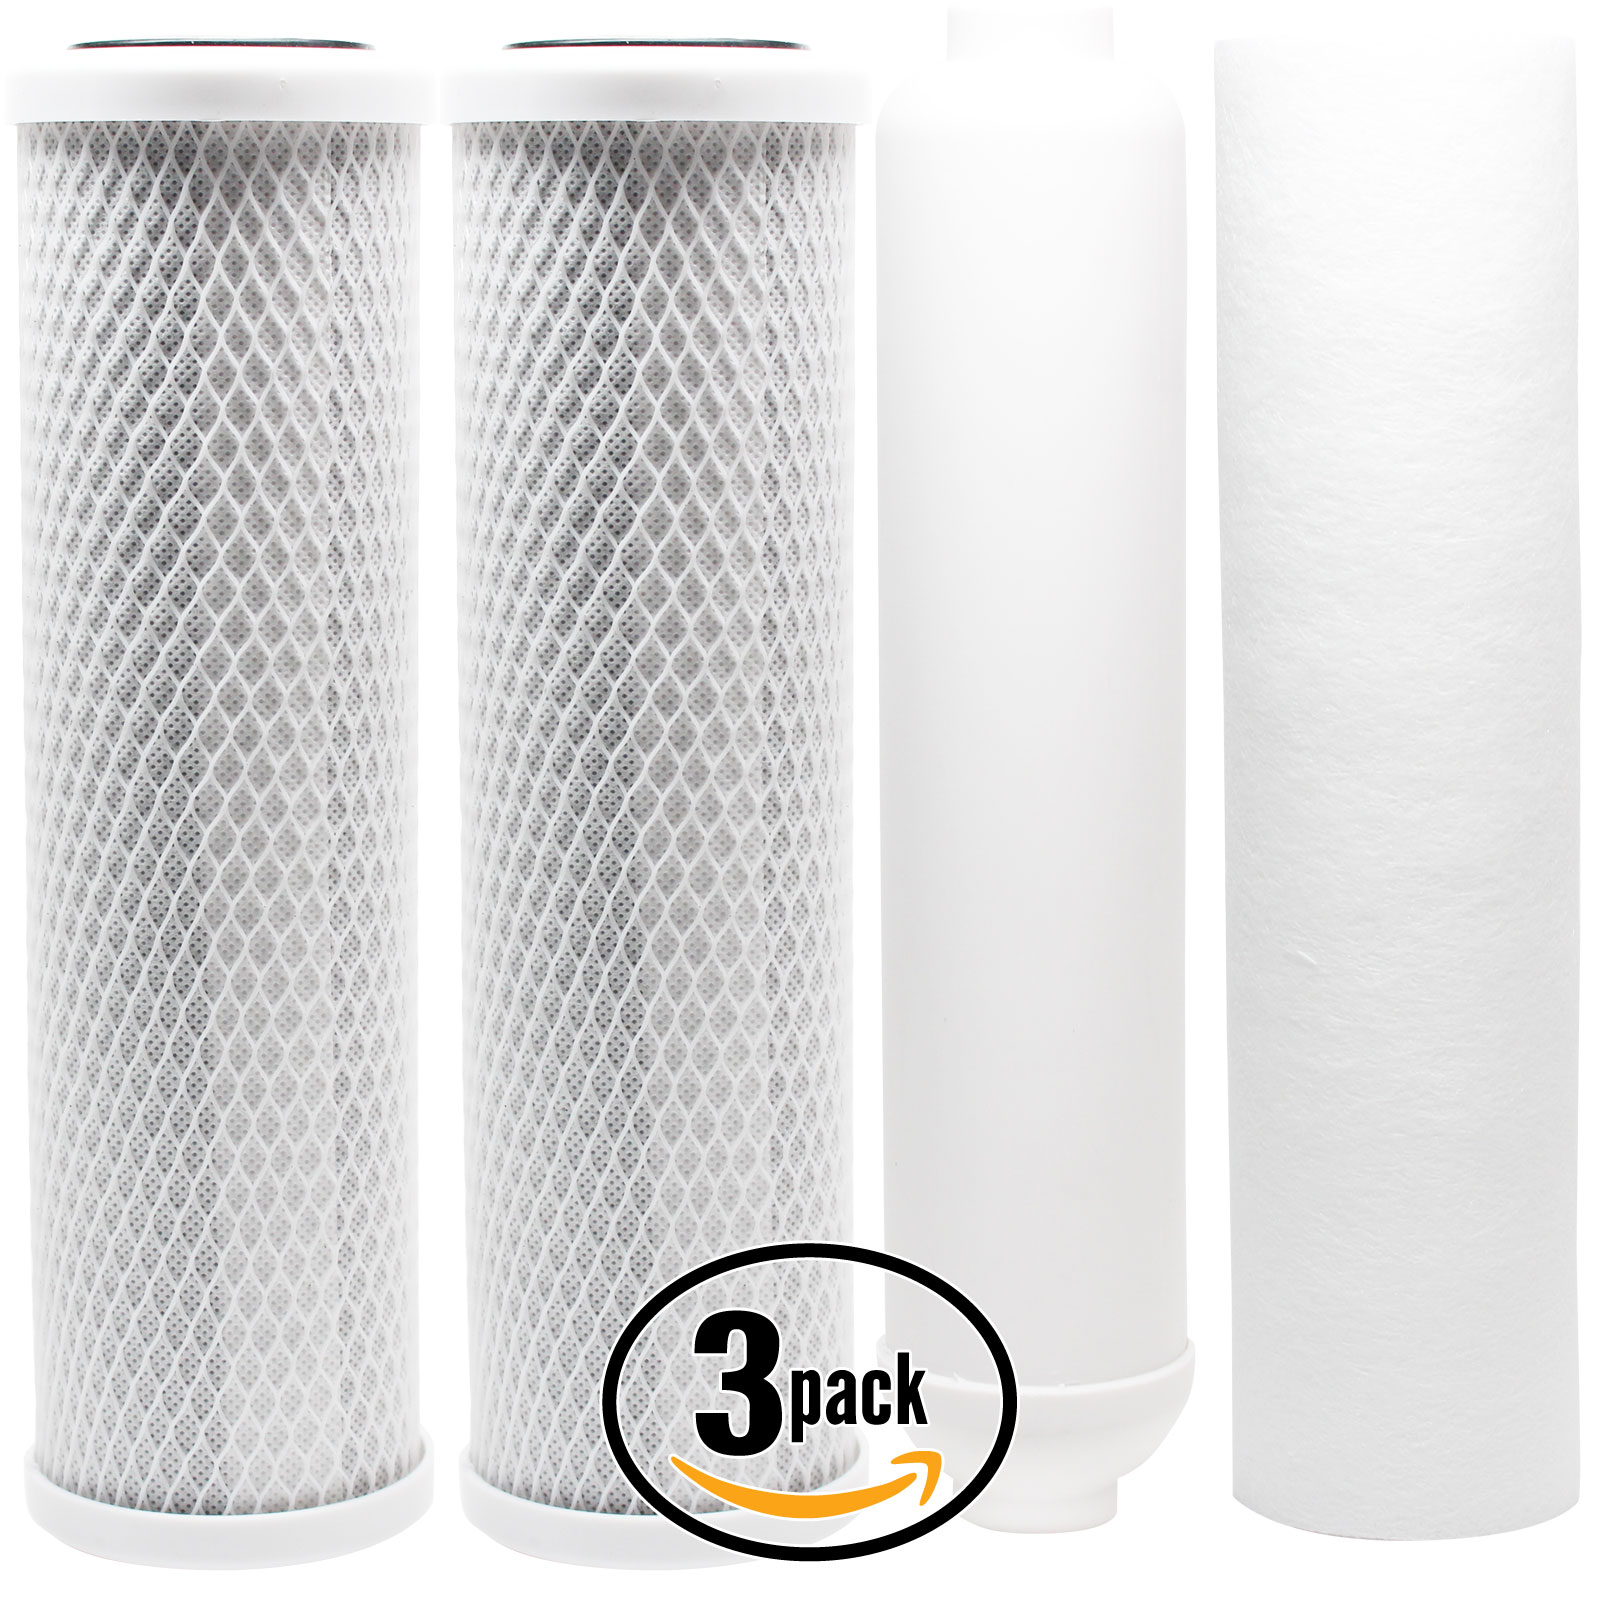 3-Pack Replacement Filter Kit for Proline Proline Gold RO System - Includes Carbon Block Filters, PP Sediment Filter & Inline Filter Cartridge - Denali Pure Brand